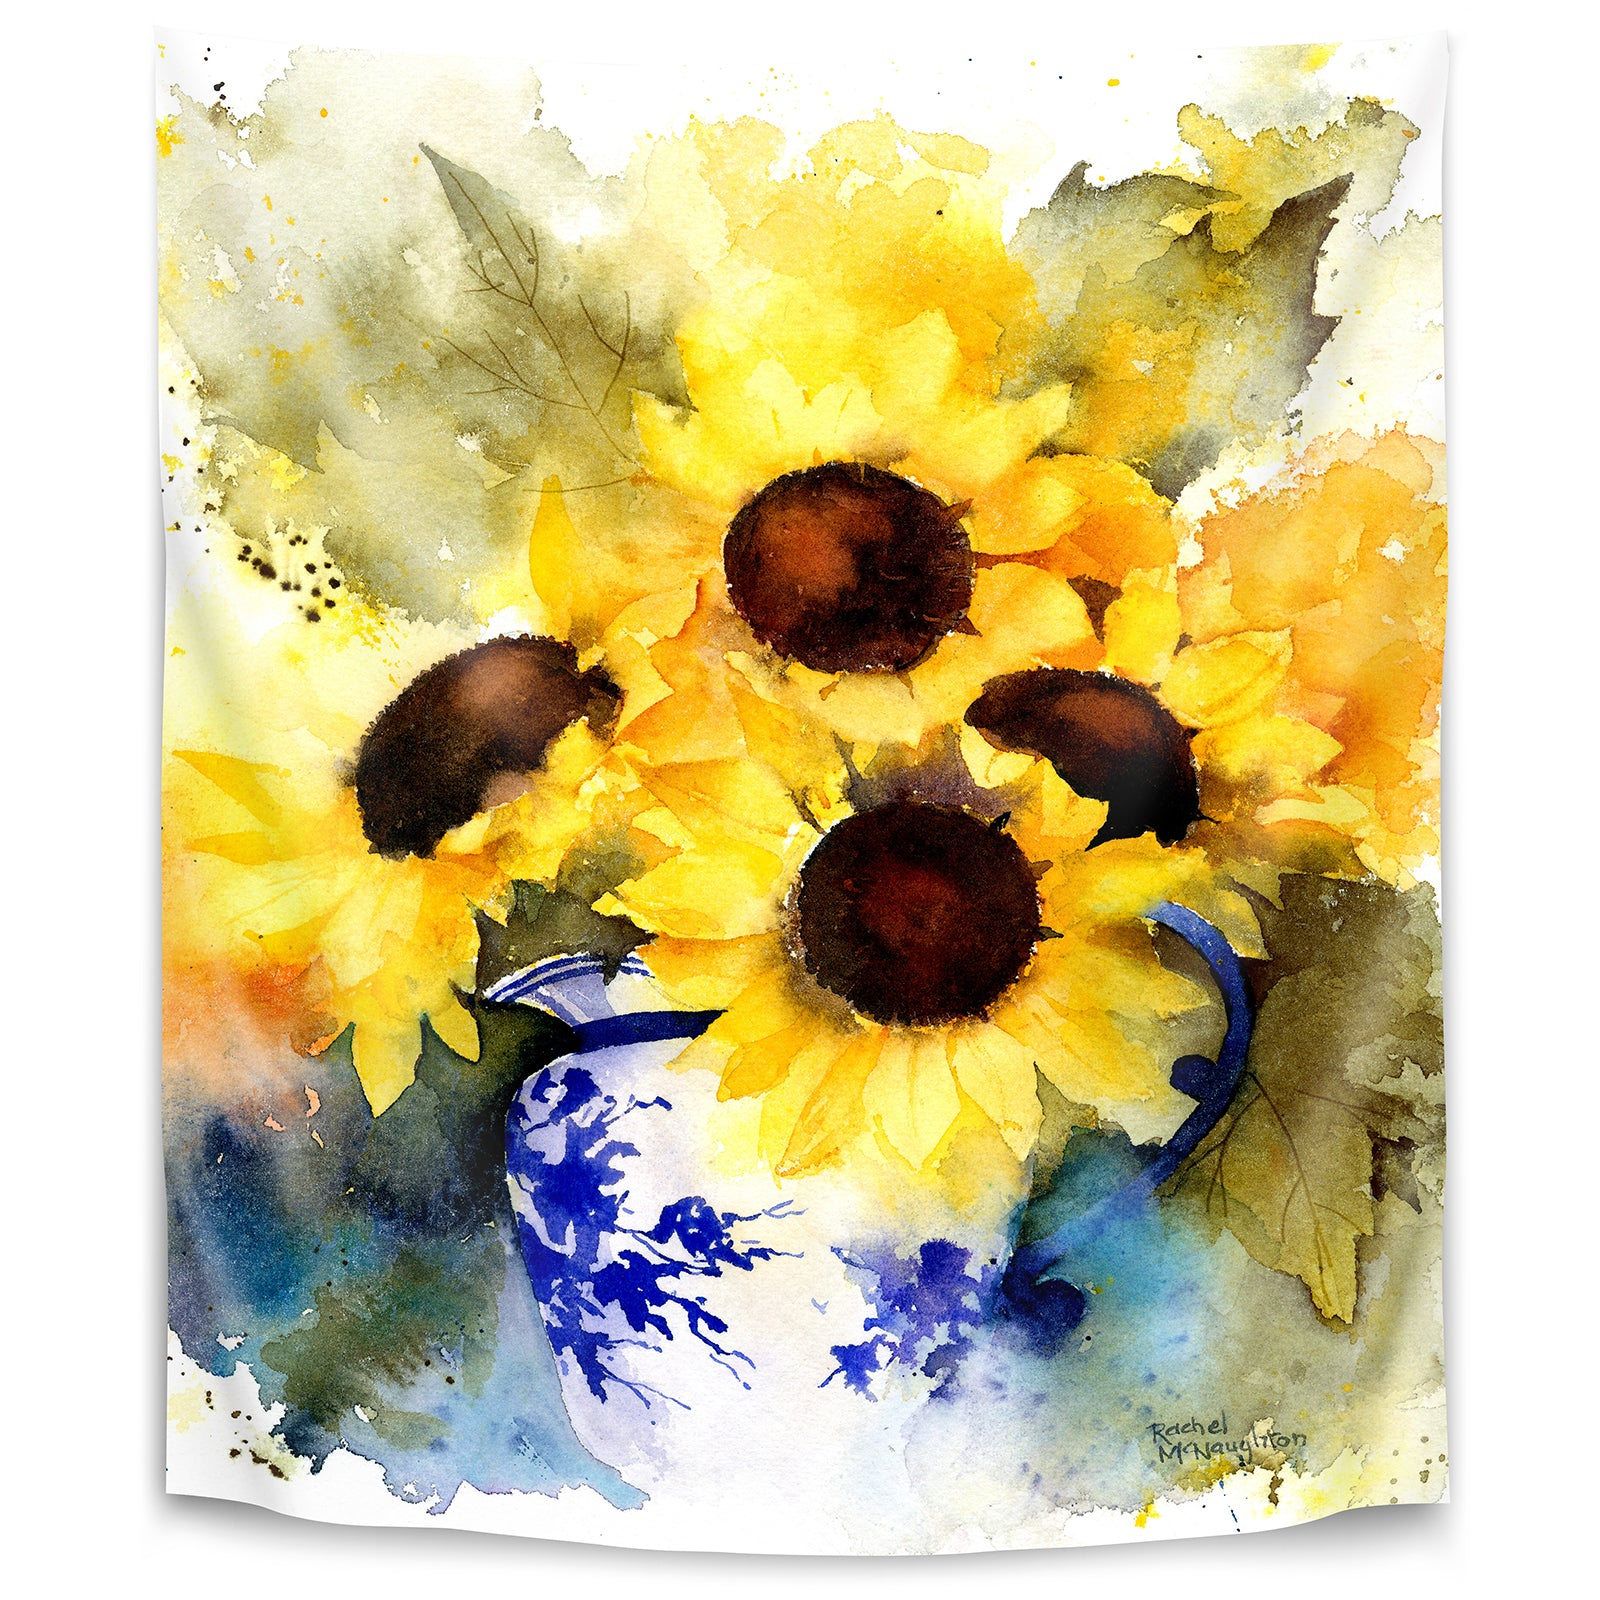 Sunflowers In Blue And White Vase by Rachel Mcnaughton Tapestry - Wall Tapestry - Americanflat